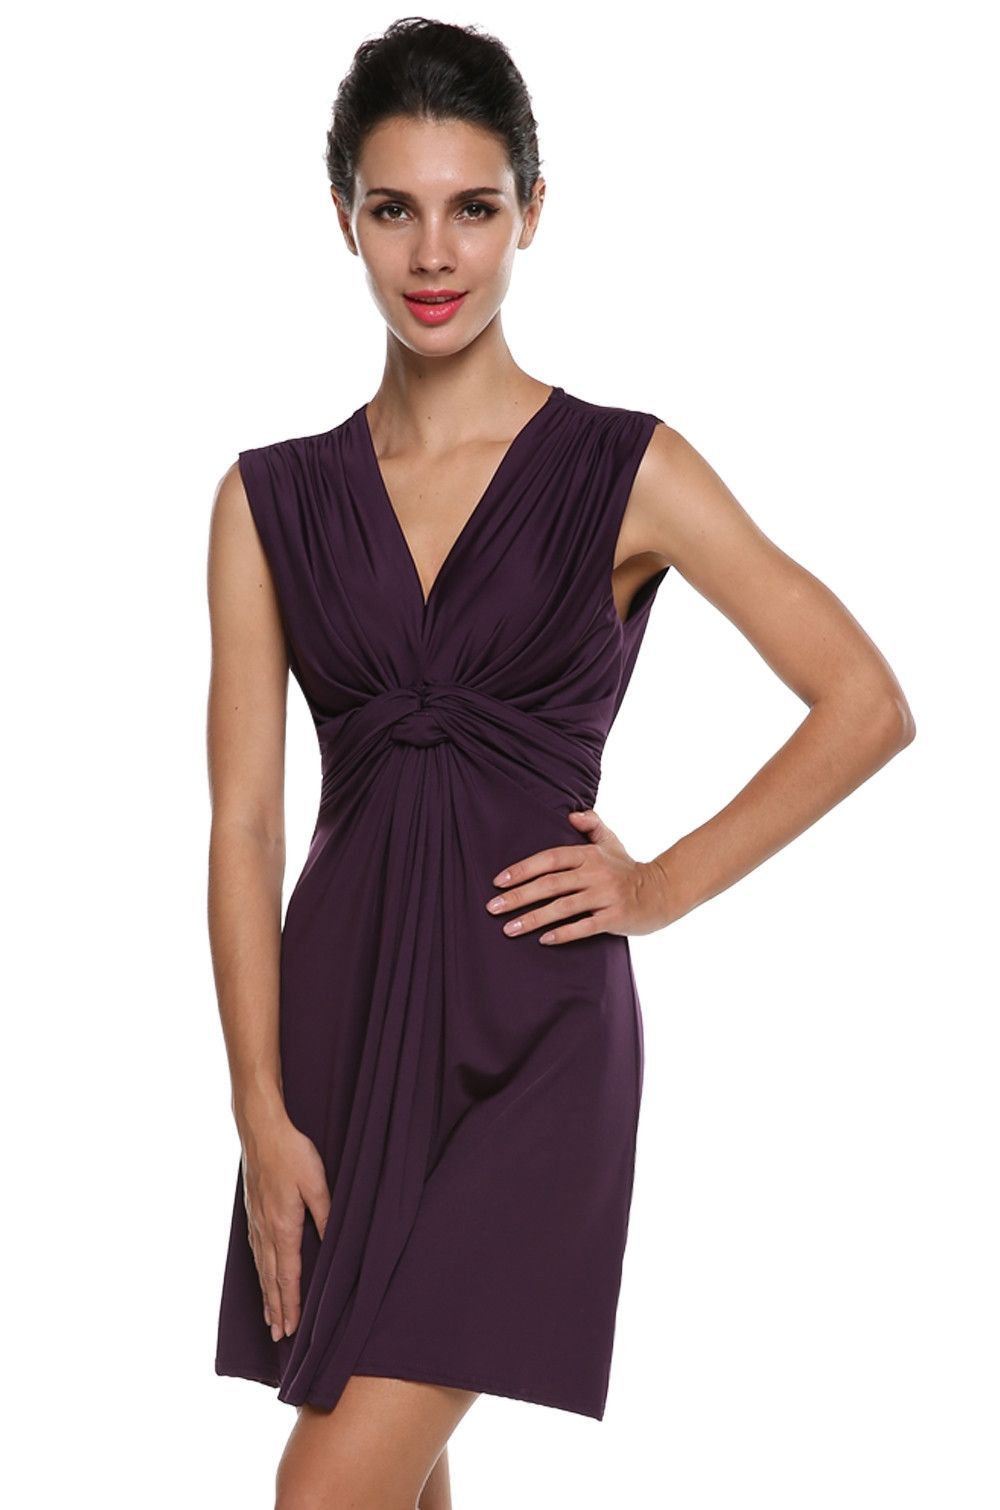 139eff61 Low Cut Going Out Dresses | Saddha